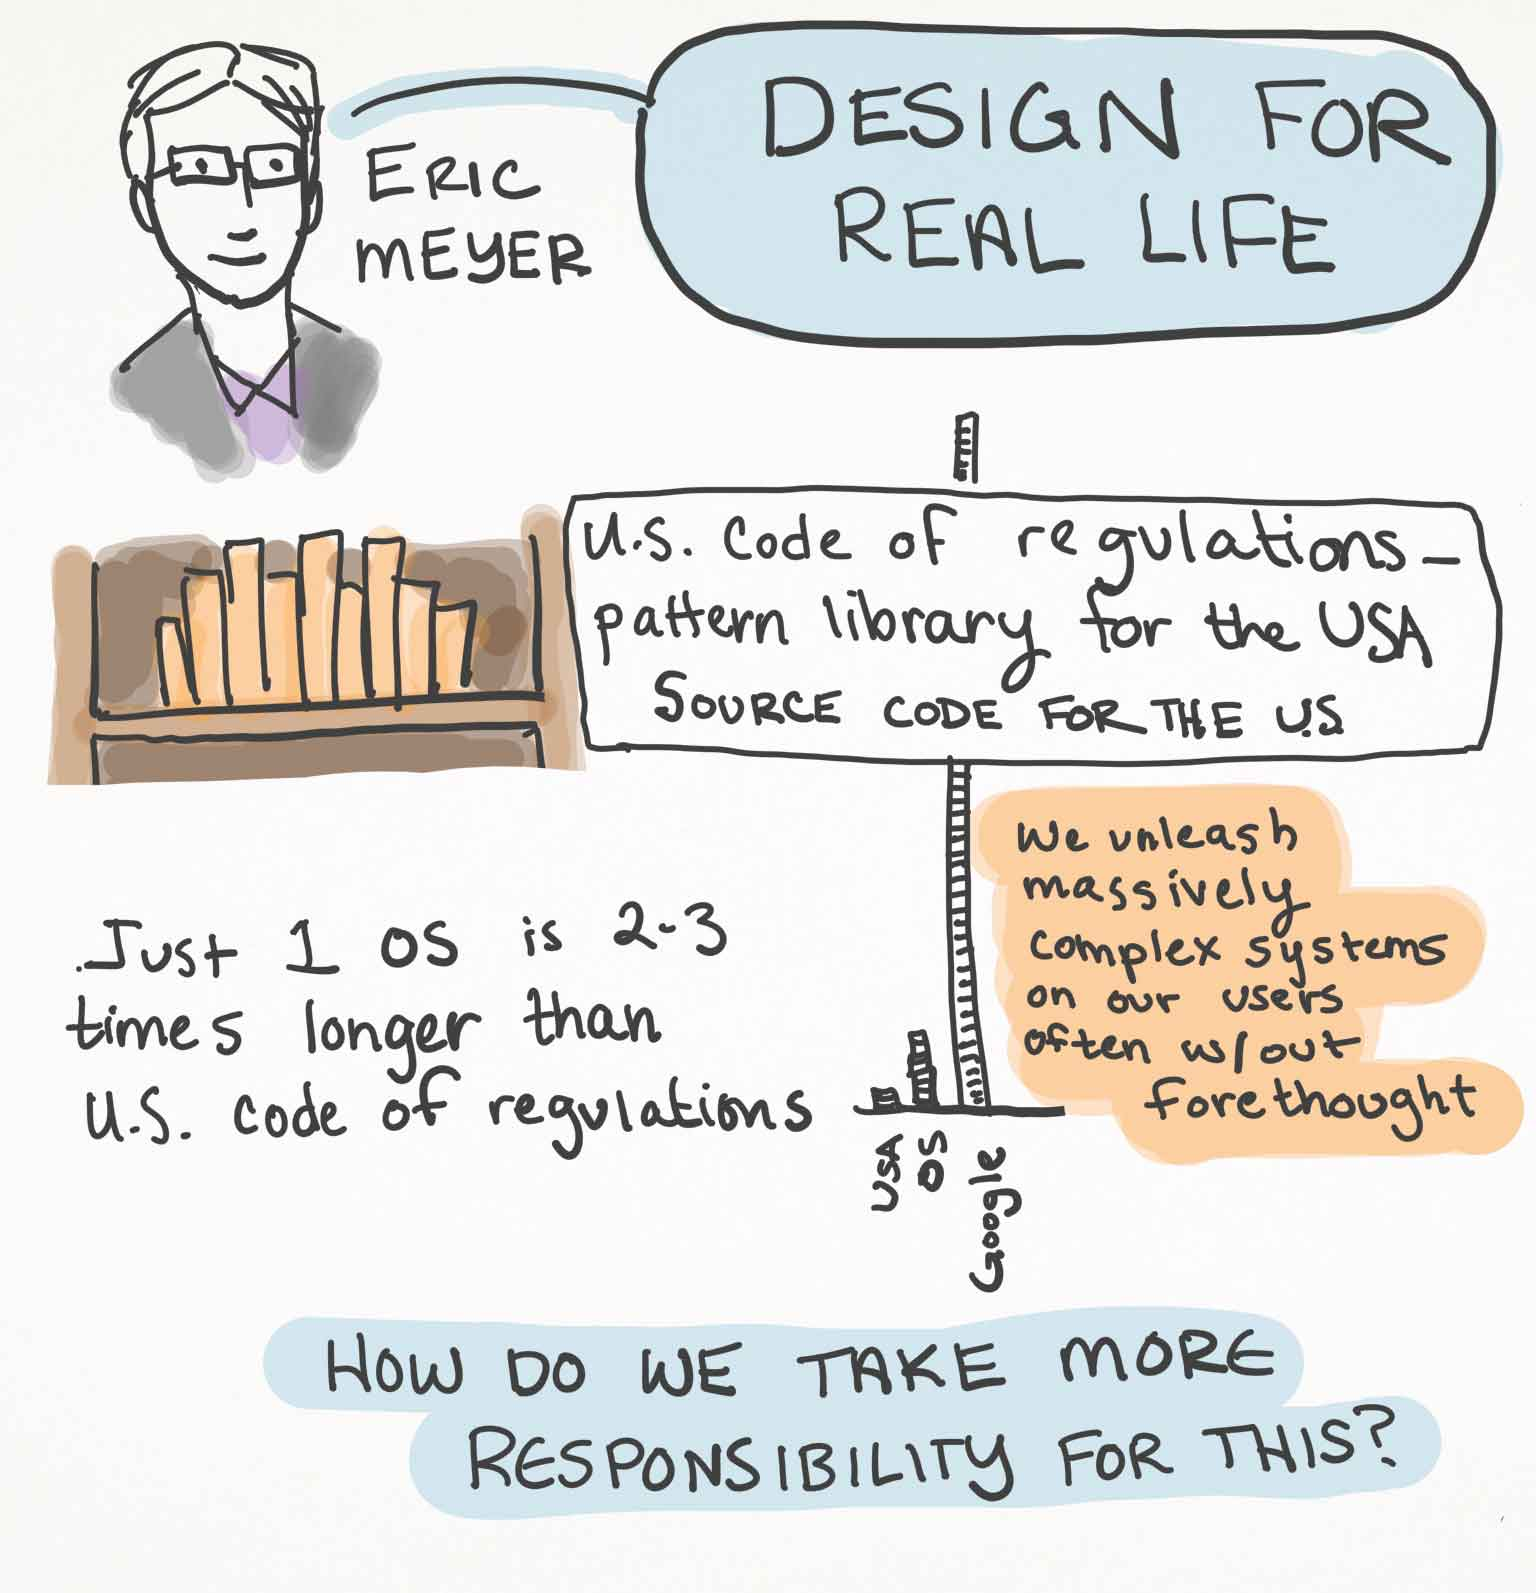 Sketchnotes page 1 from Eric Meyer's Talk